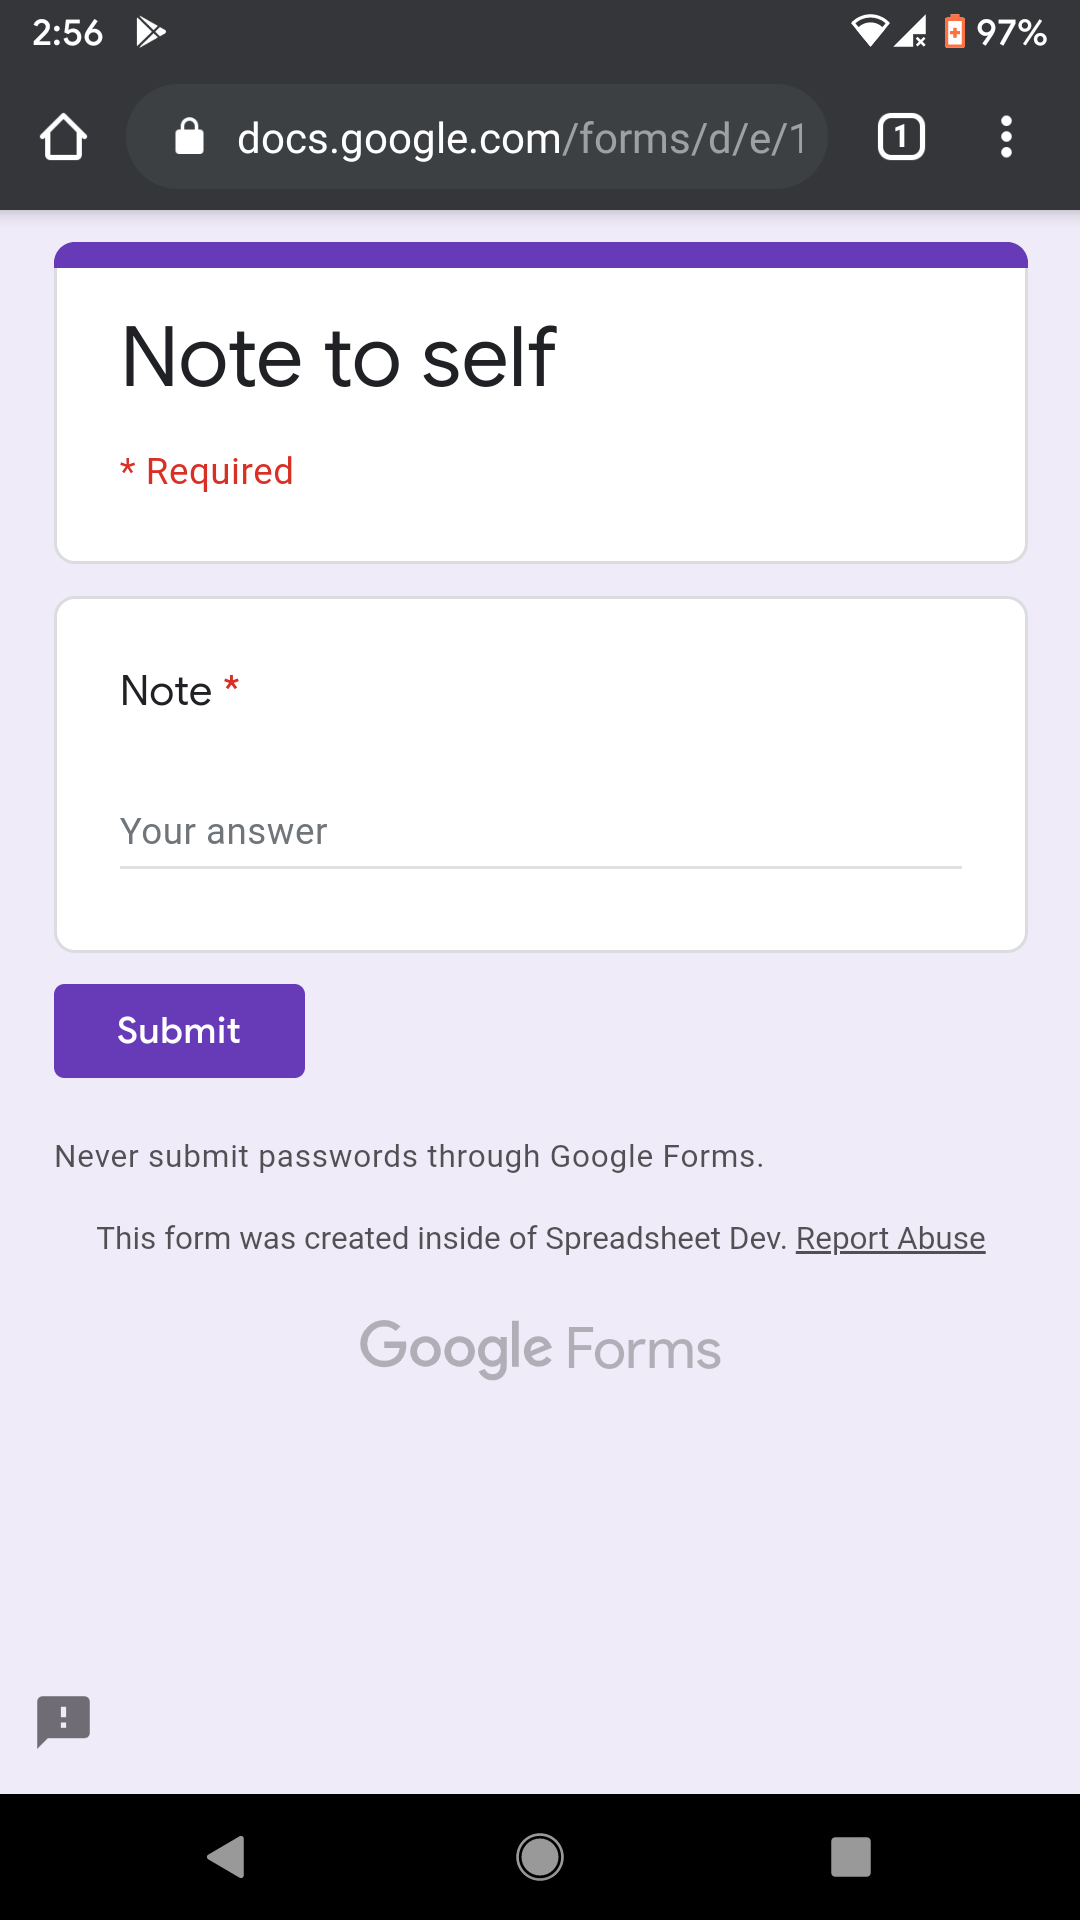 Screenshot of a Google Form that is opened in the Chrome browser on an Android phone.